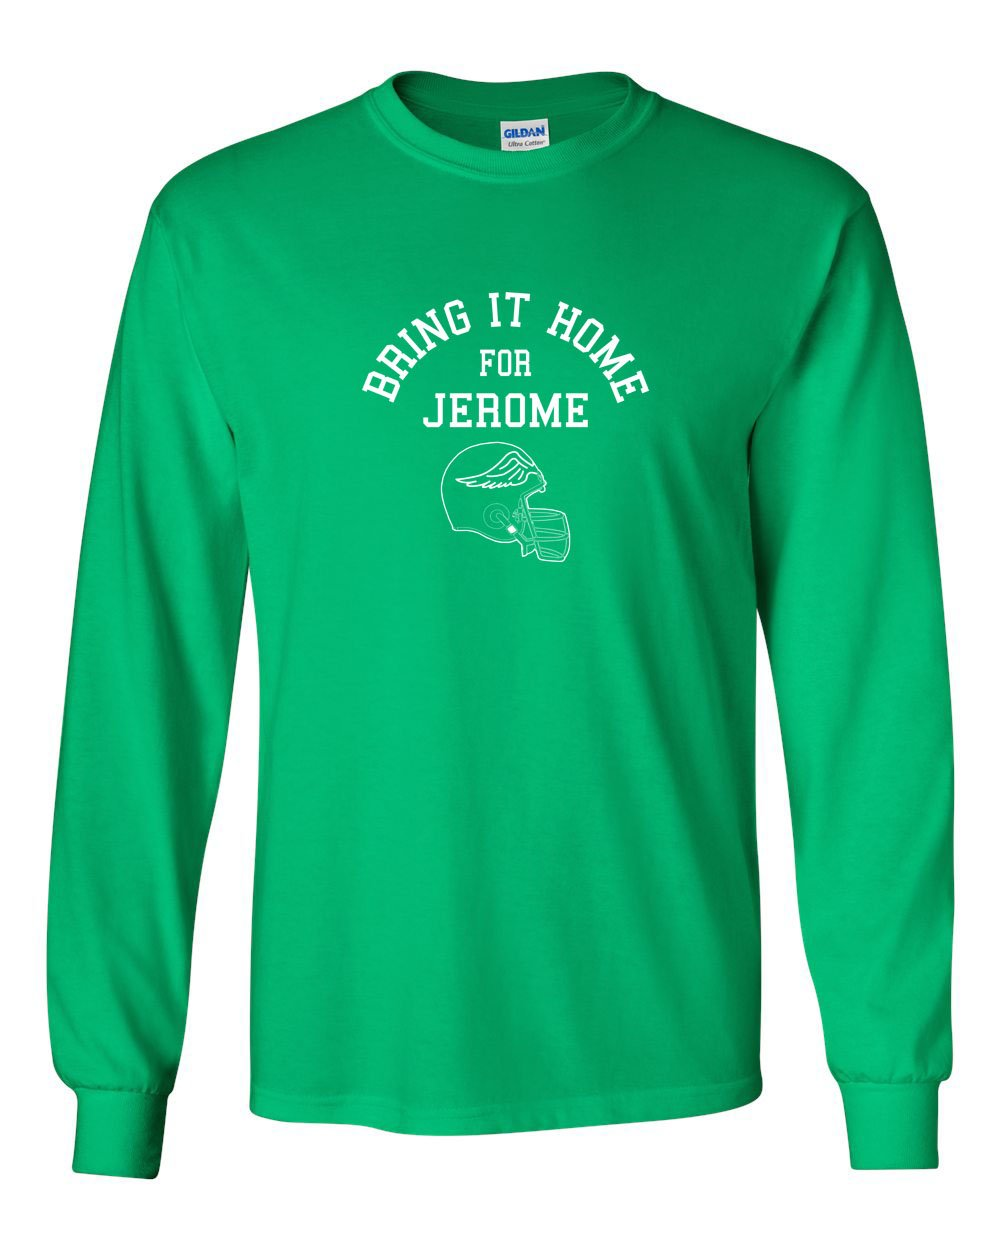 Bring It Home For Jerome MENS Long Sleeve Heavy Cotton T-Shirt